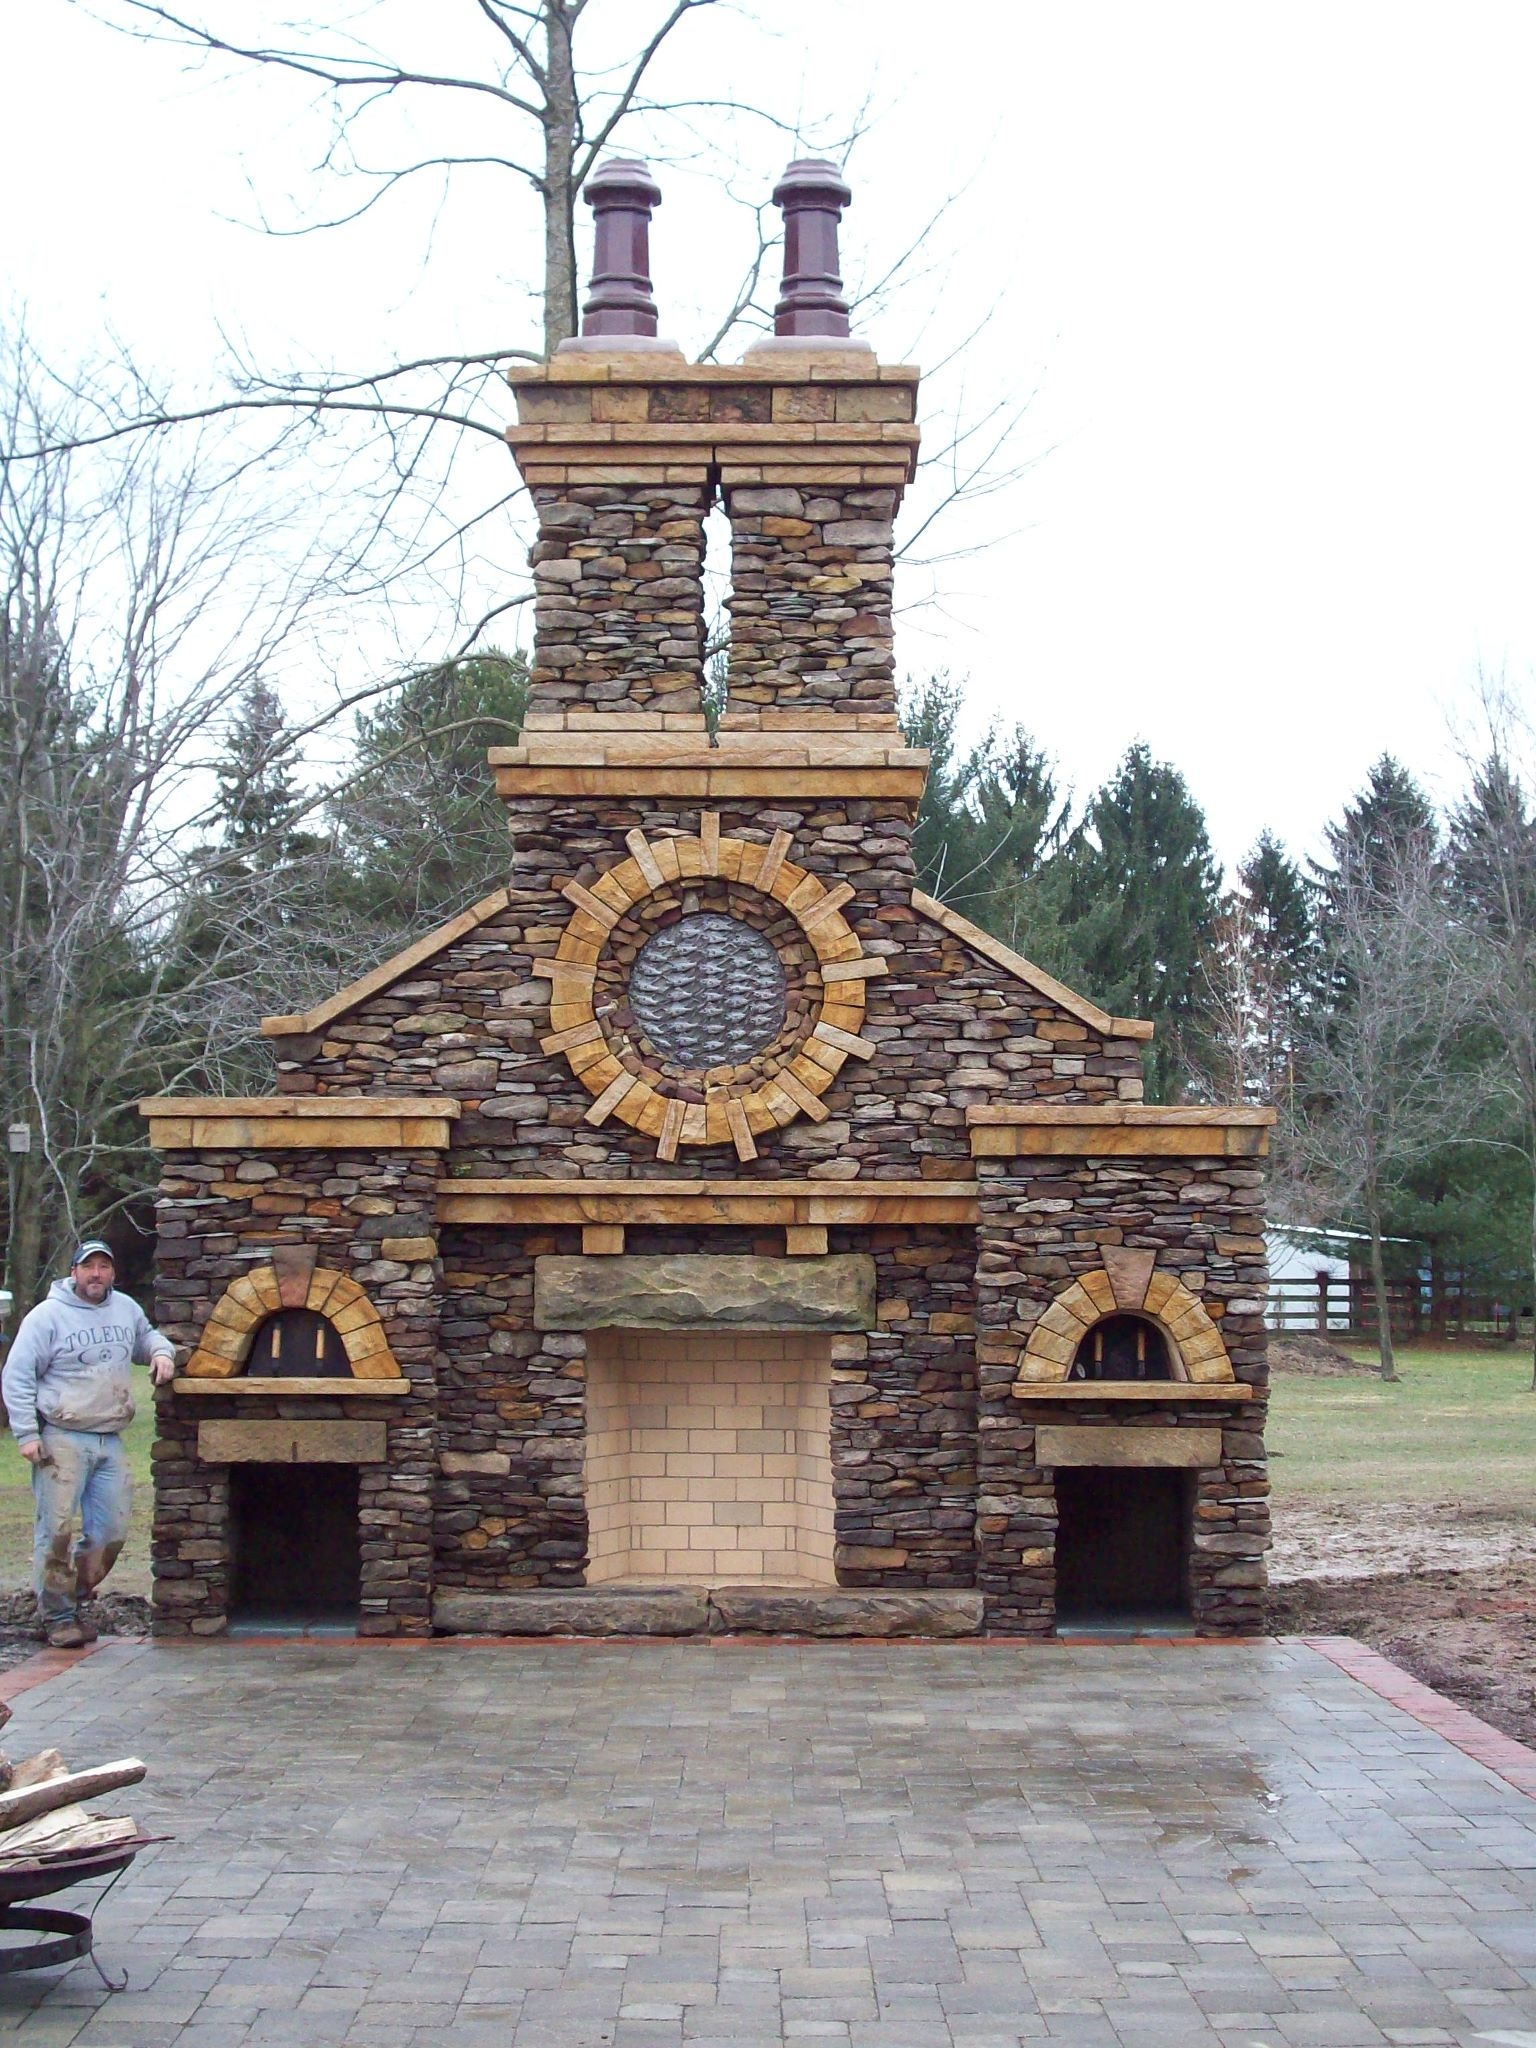 Https Yodermasonry Com 2012 02 19 Outdoor Rumford Fireplace With Pizza Oven